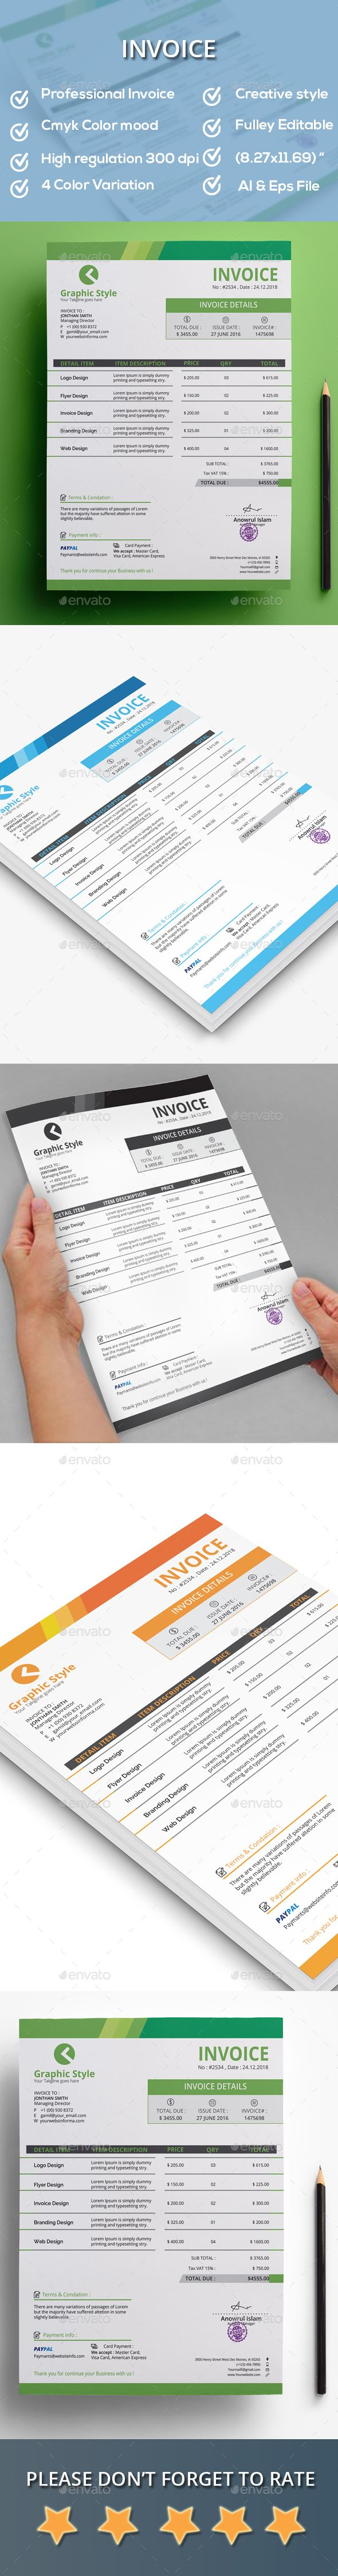 Invoice by Creativesolution Creative Features A4 size